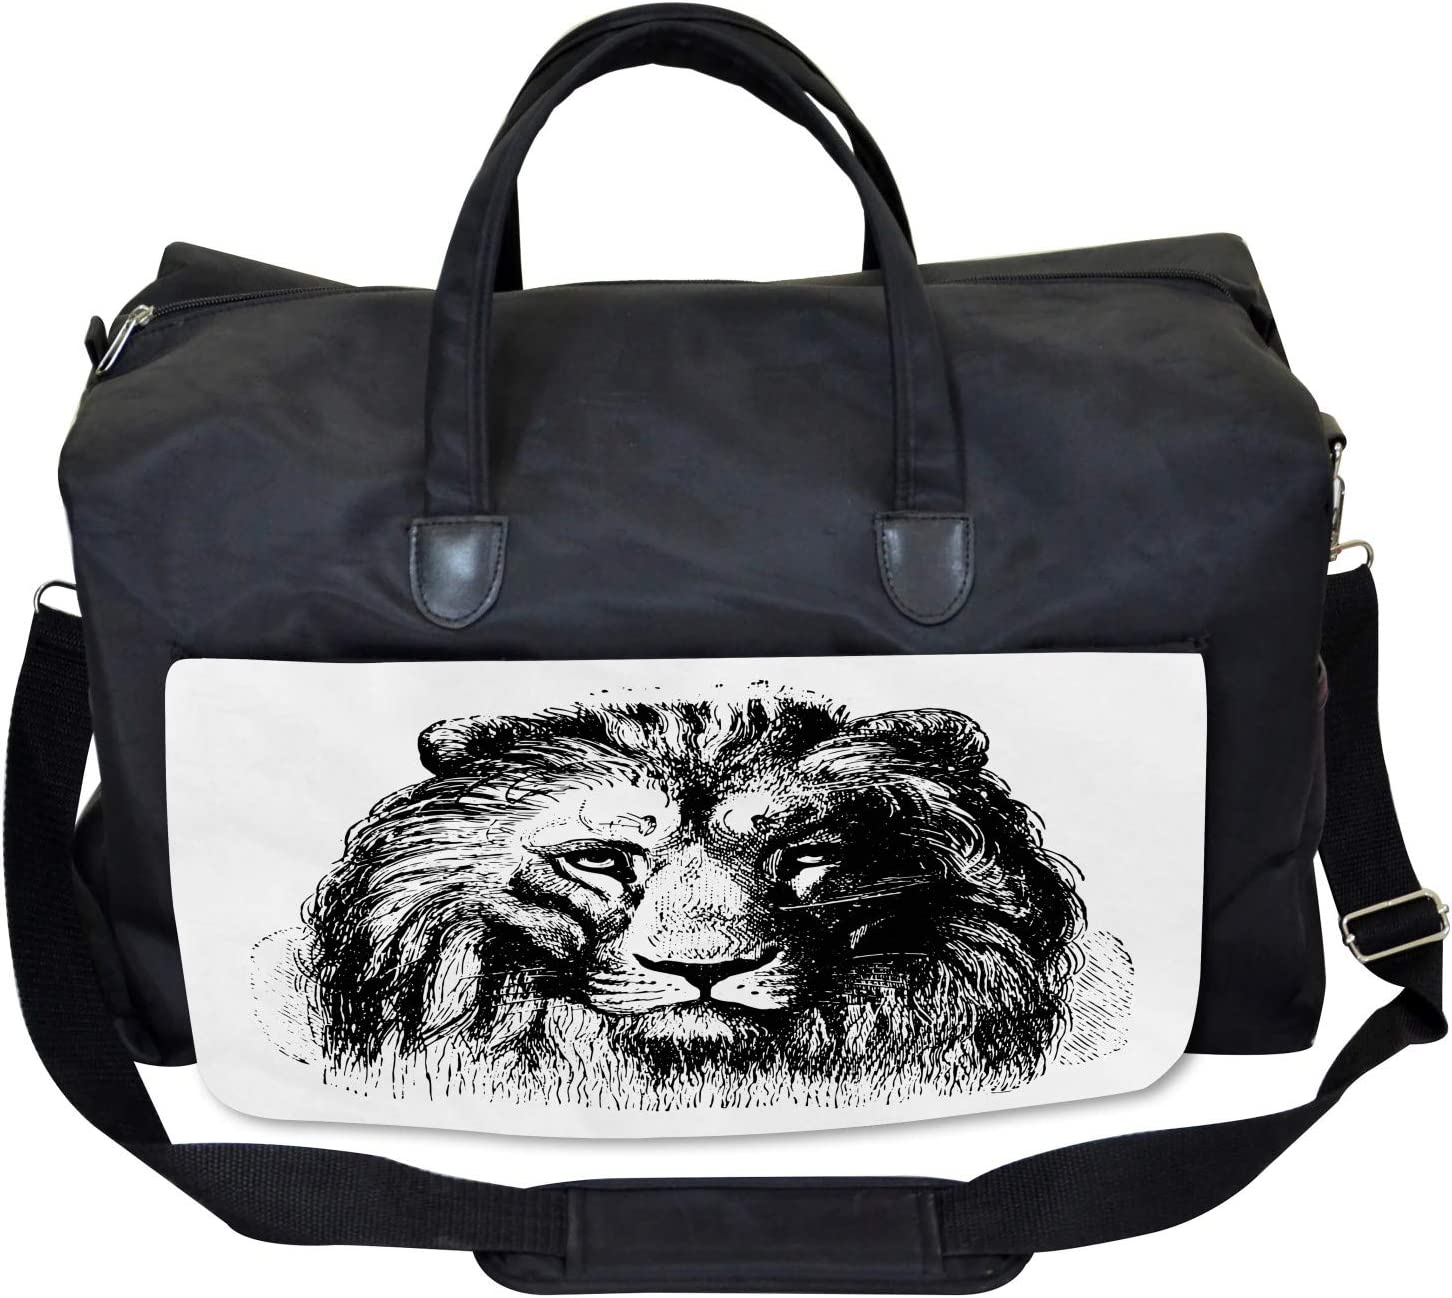 Tiger Up-Close Gym Bag